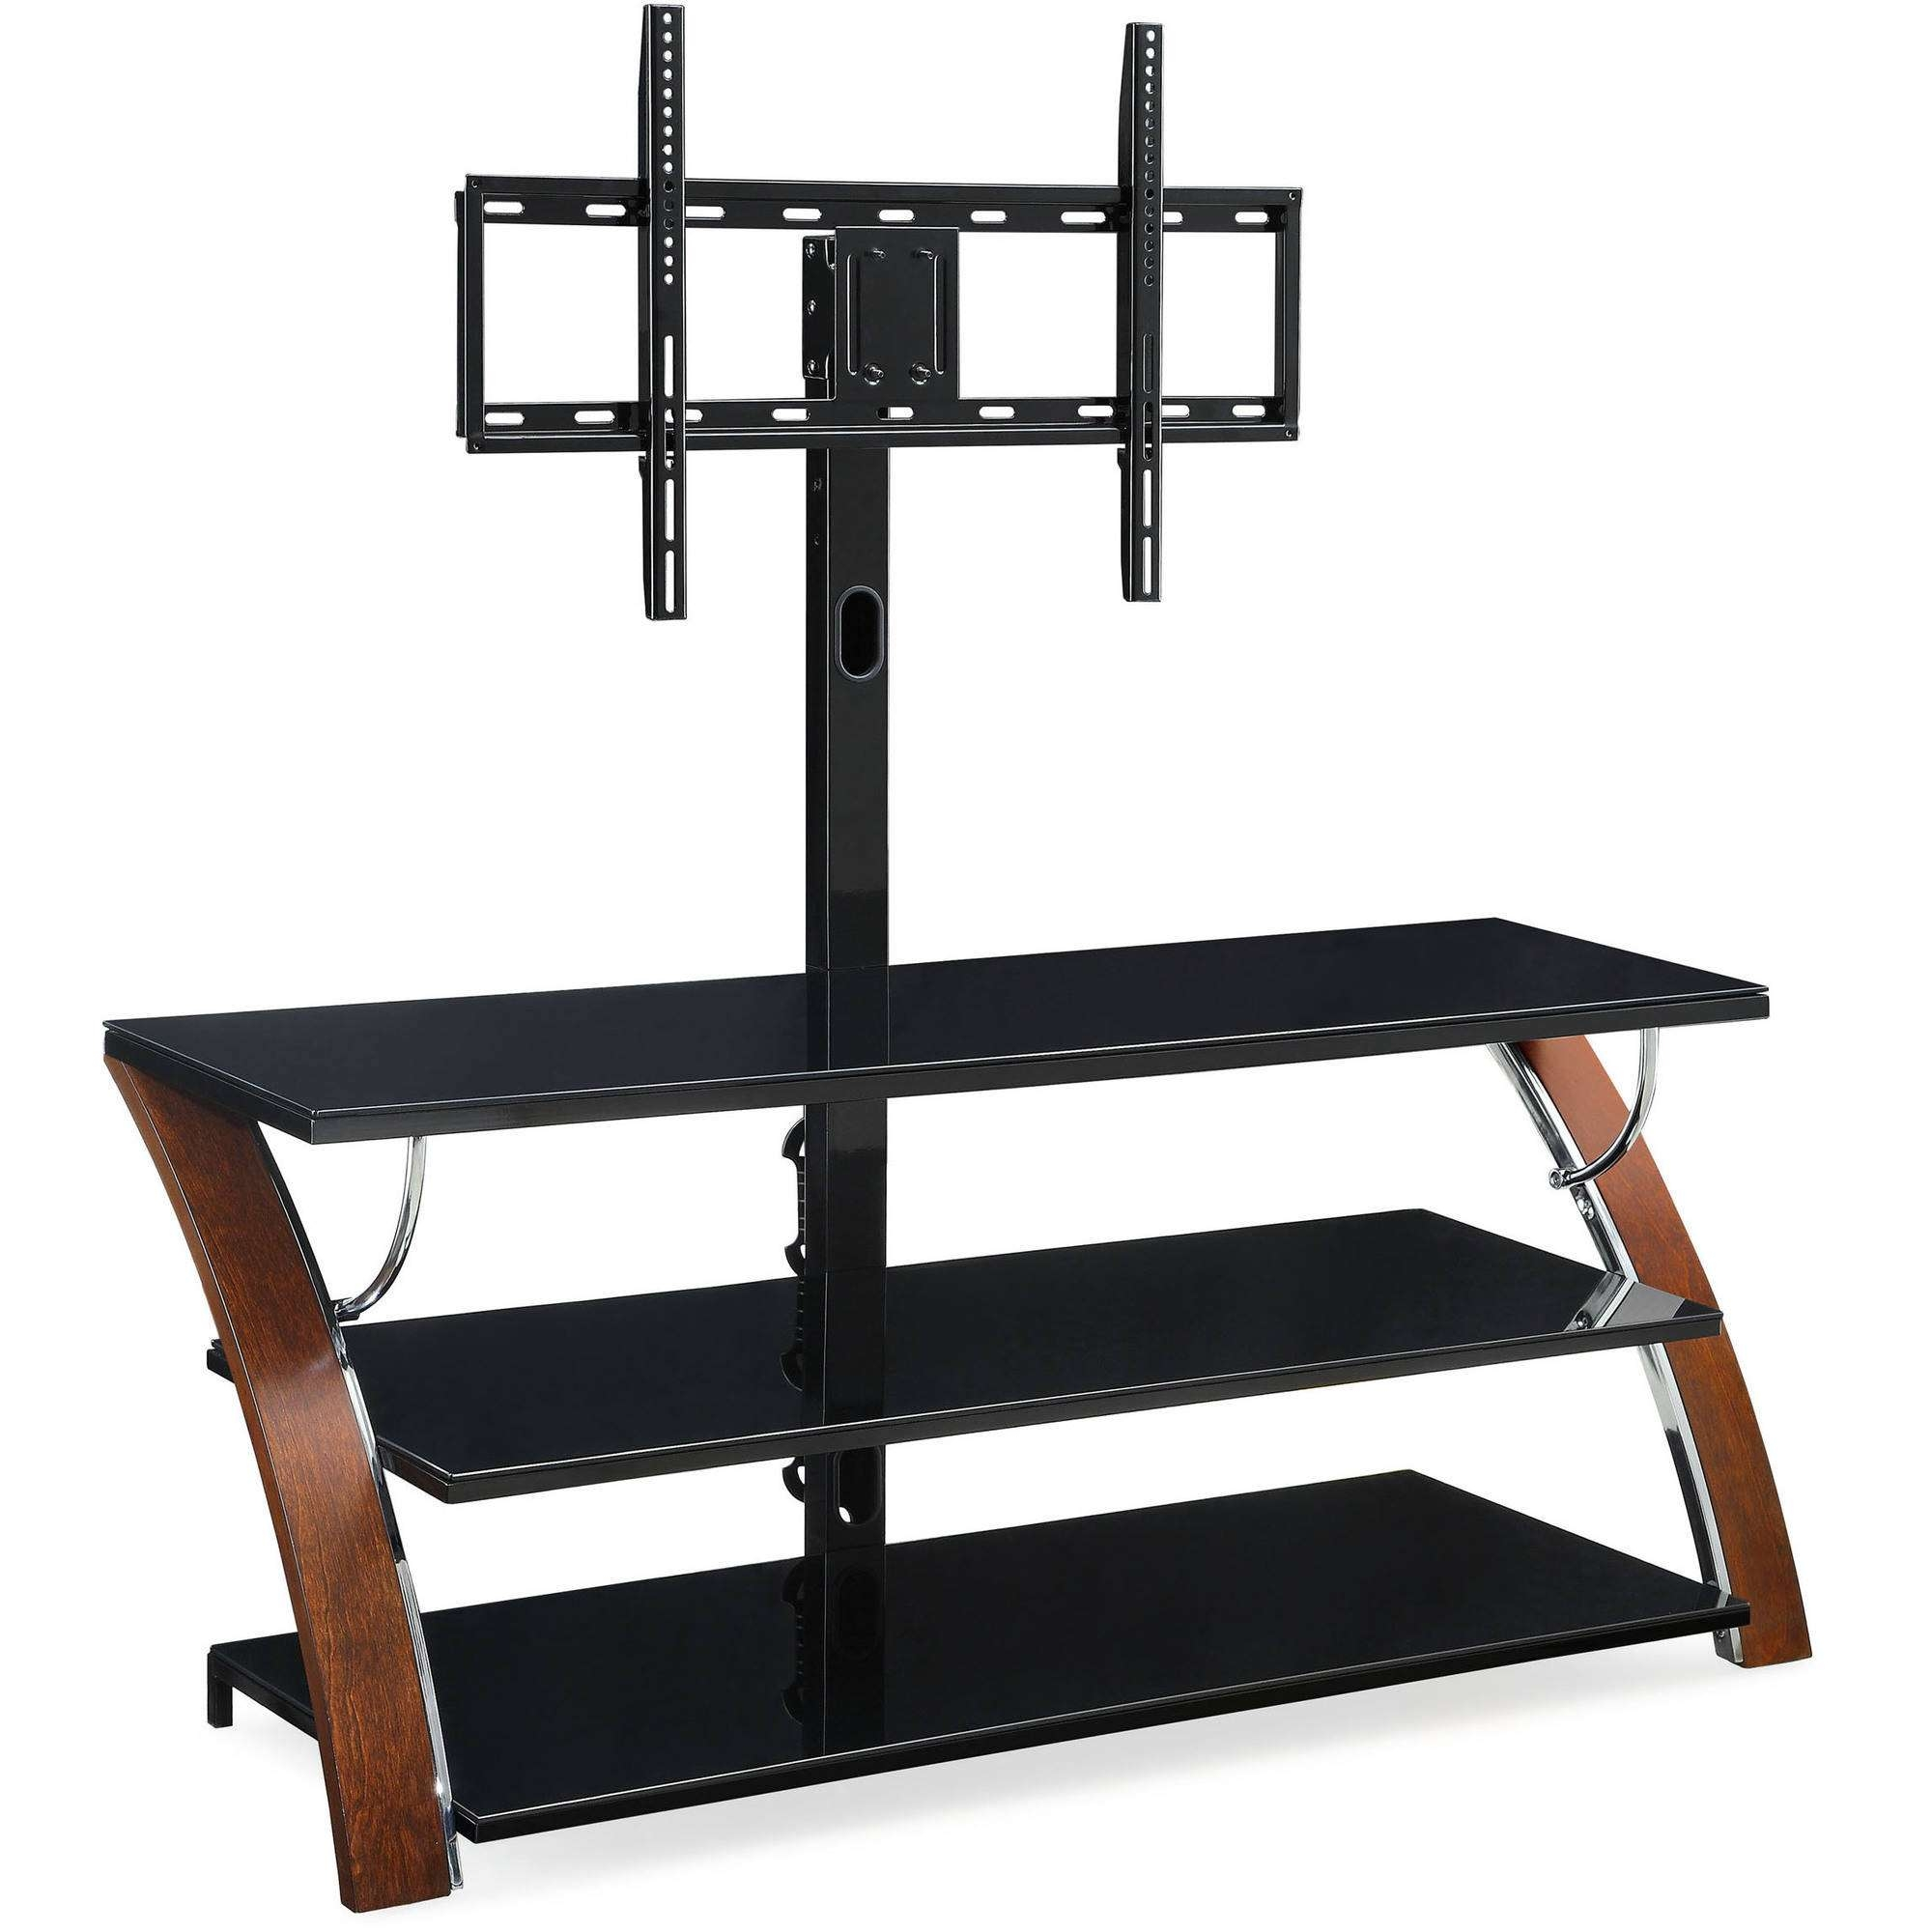 Trend Tv Stand With Swivel Mount For Flat Panel Tvs 97 On Home In Wood Tv Stands With Swivel Mount (View 10 of 15)